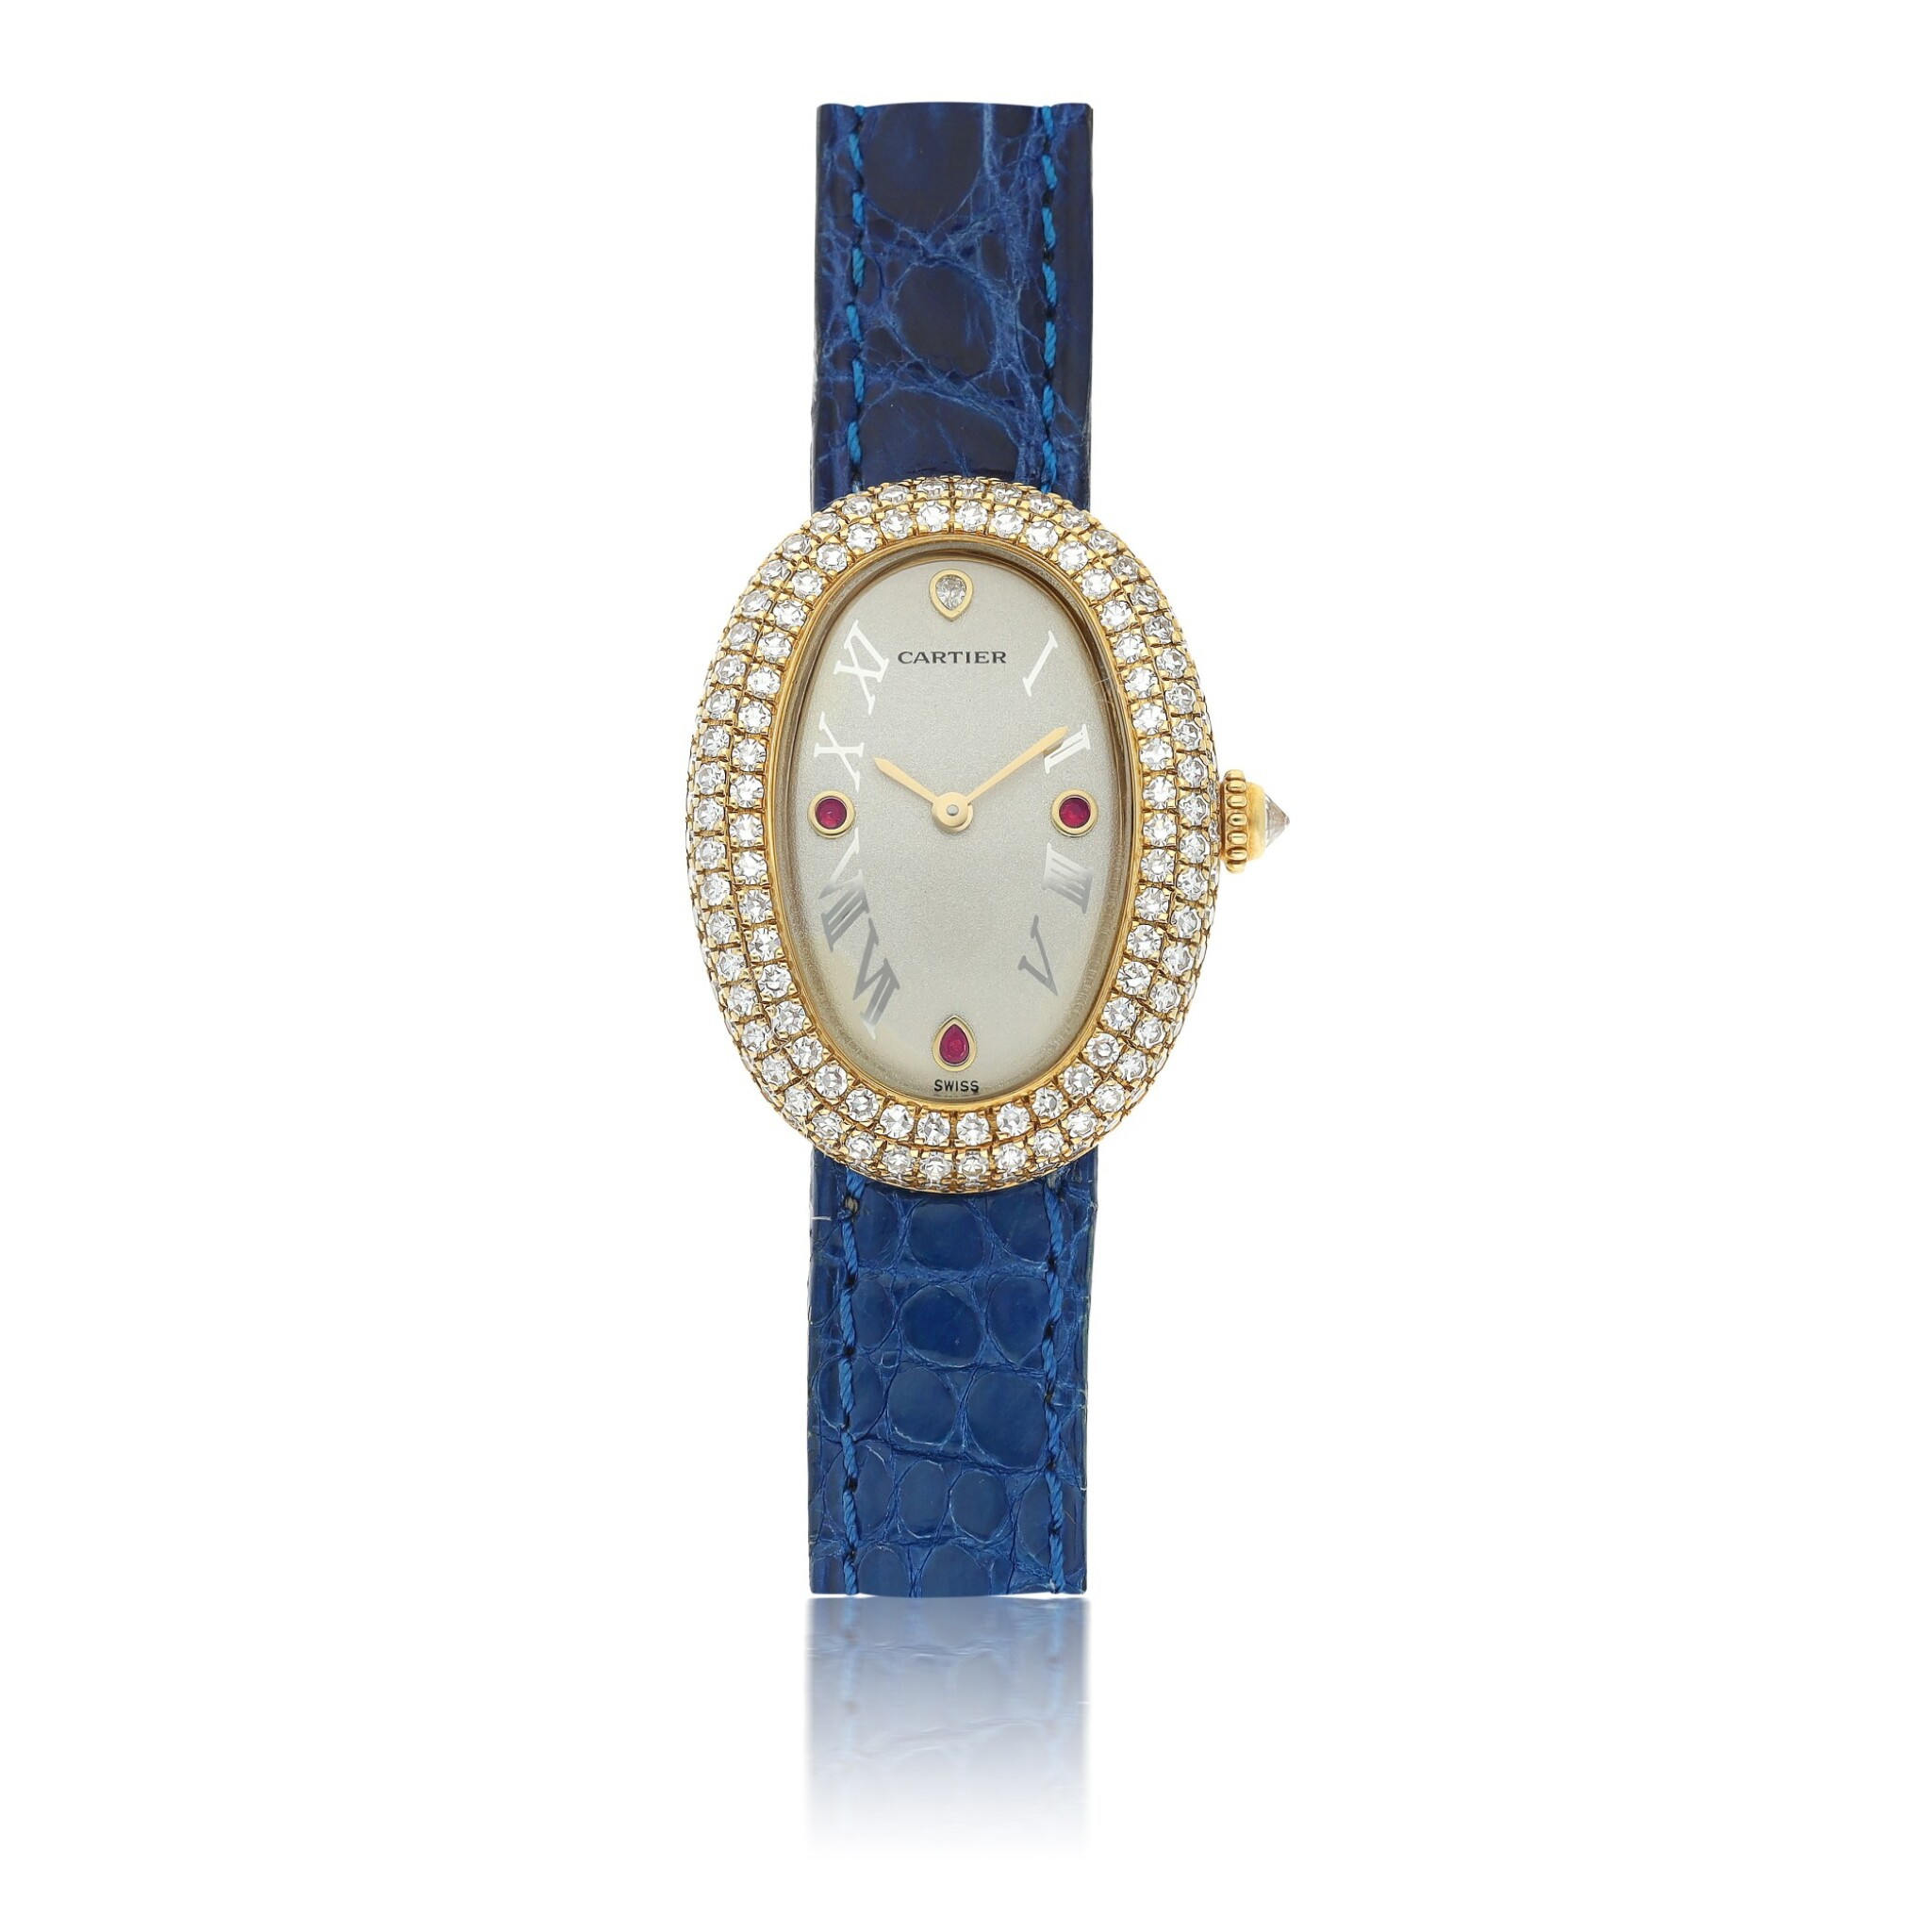 View full screen - View 1 of Lot 31. CARTIER | REF 1950 1 BAIGNOIRE, A LADY'S YELLOW GOLD, DIAMOND AND RUBY SET OVAL WRISTWATCH CIRCA 2005.